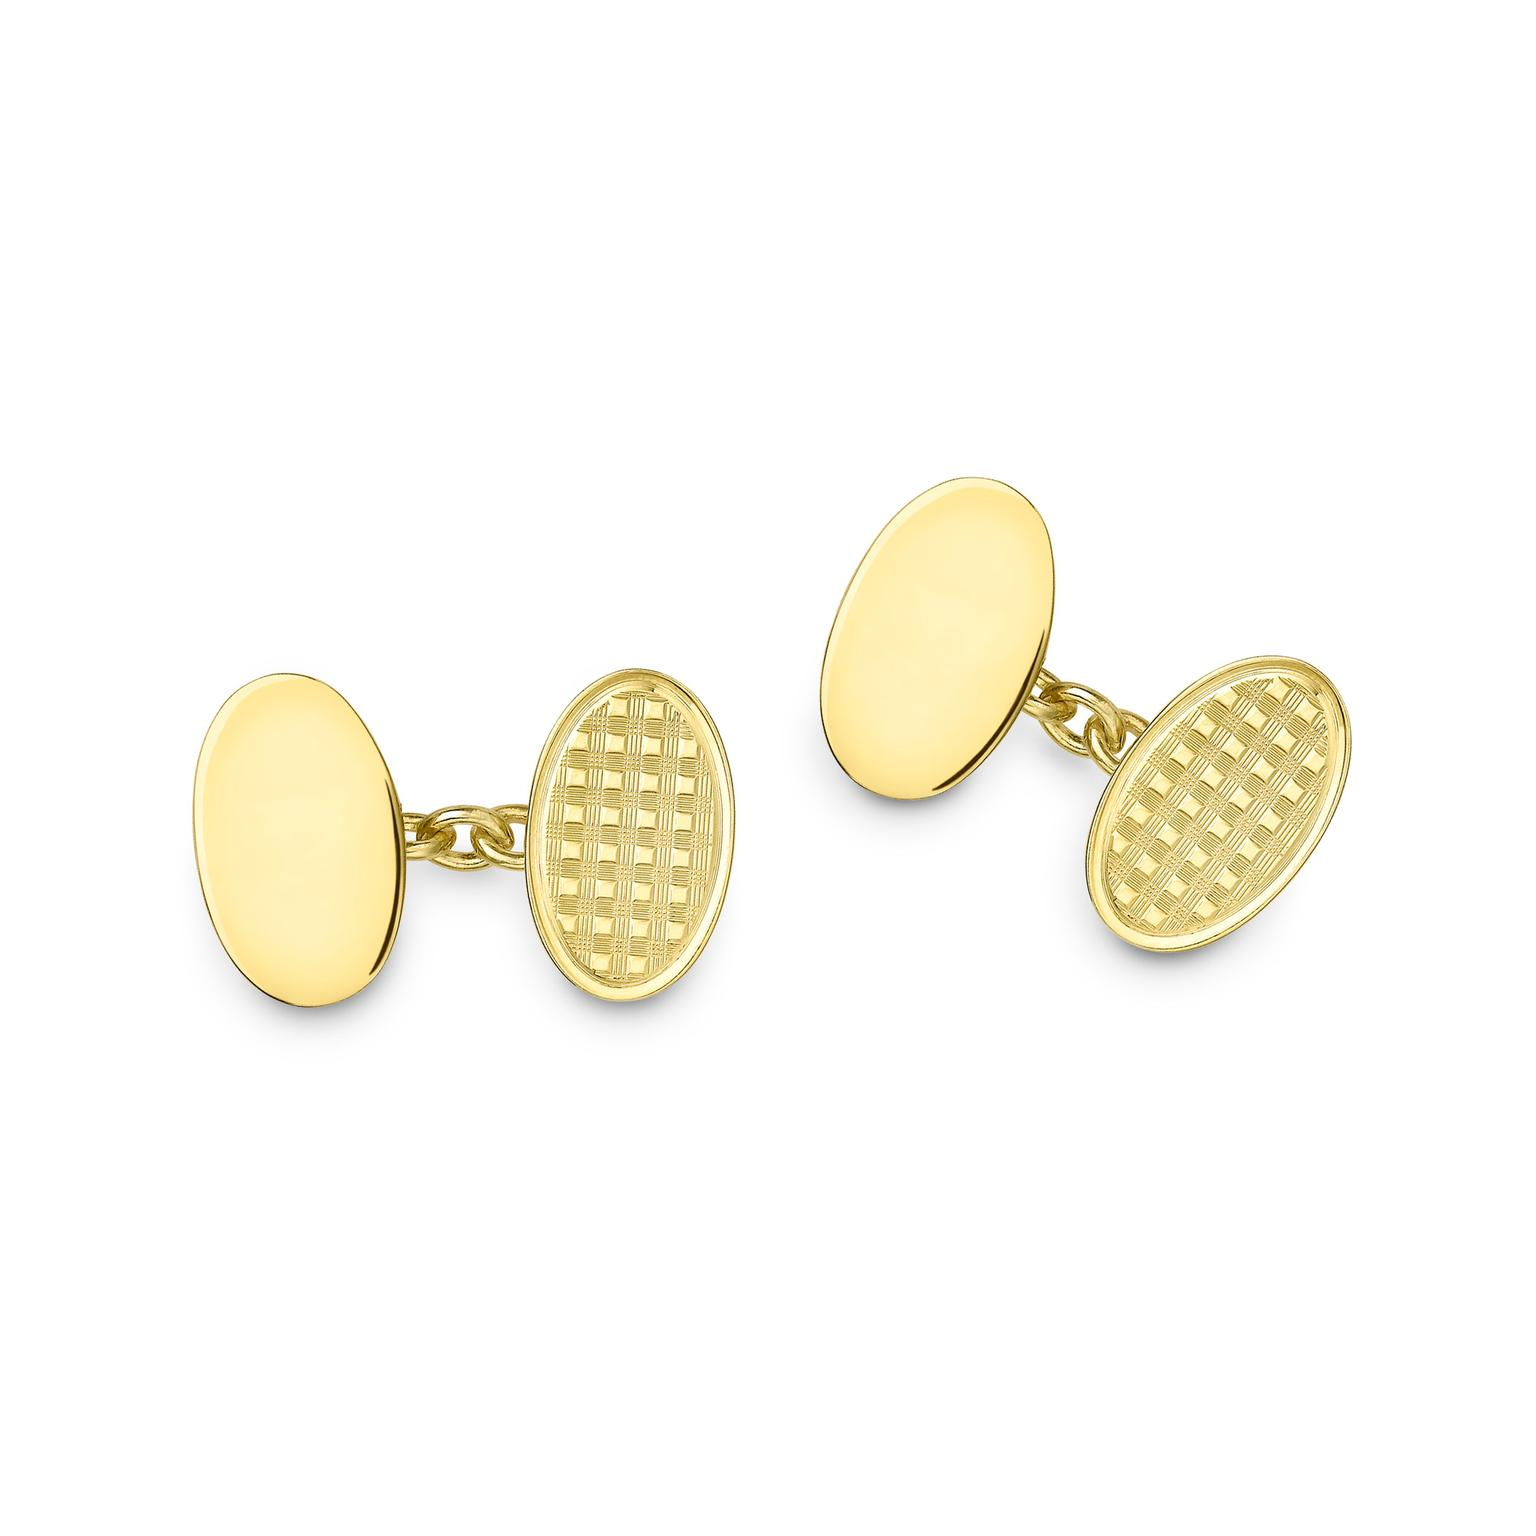 DeakinFrancis Gold cufflinks zoom